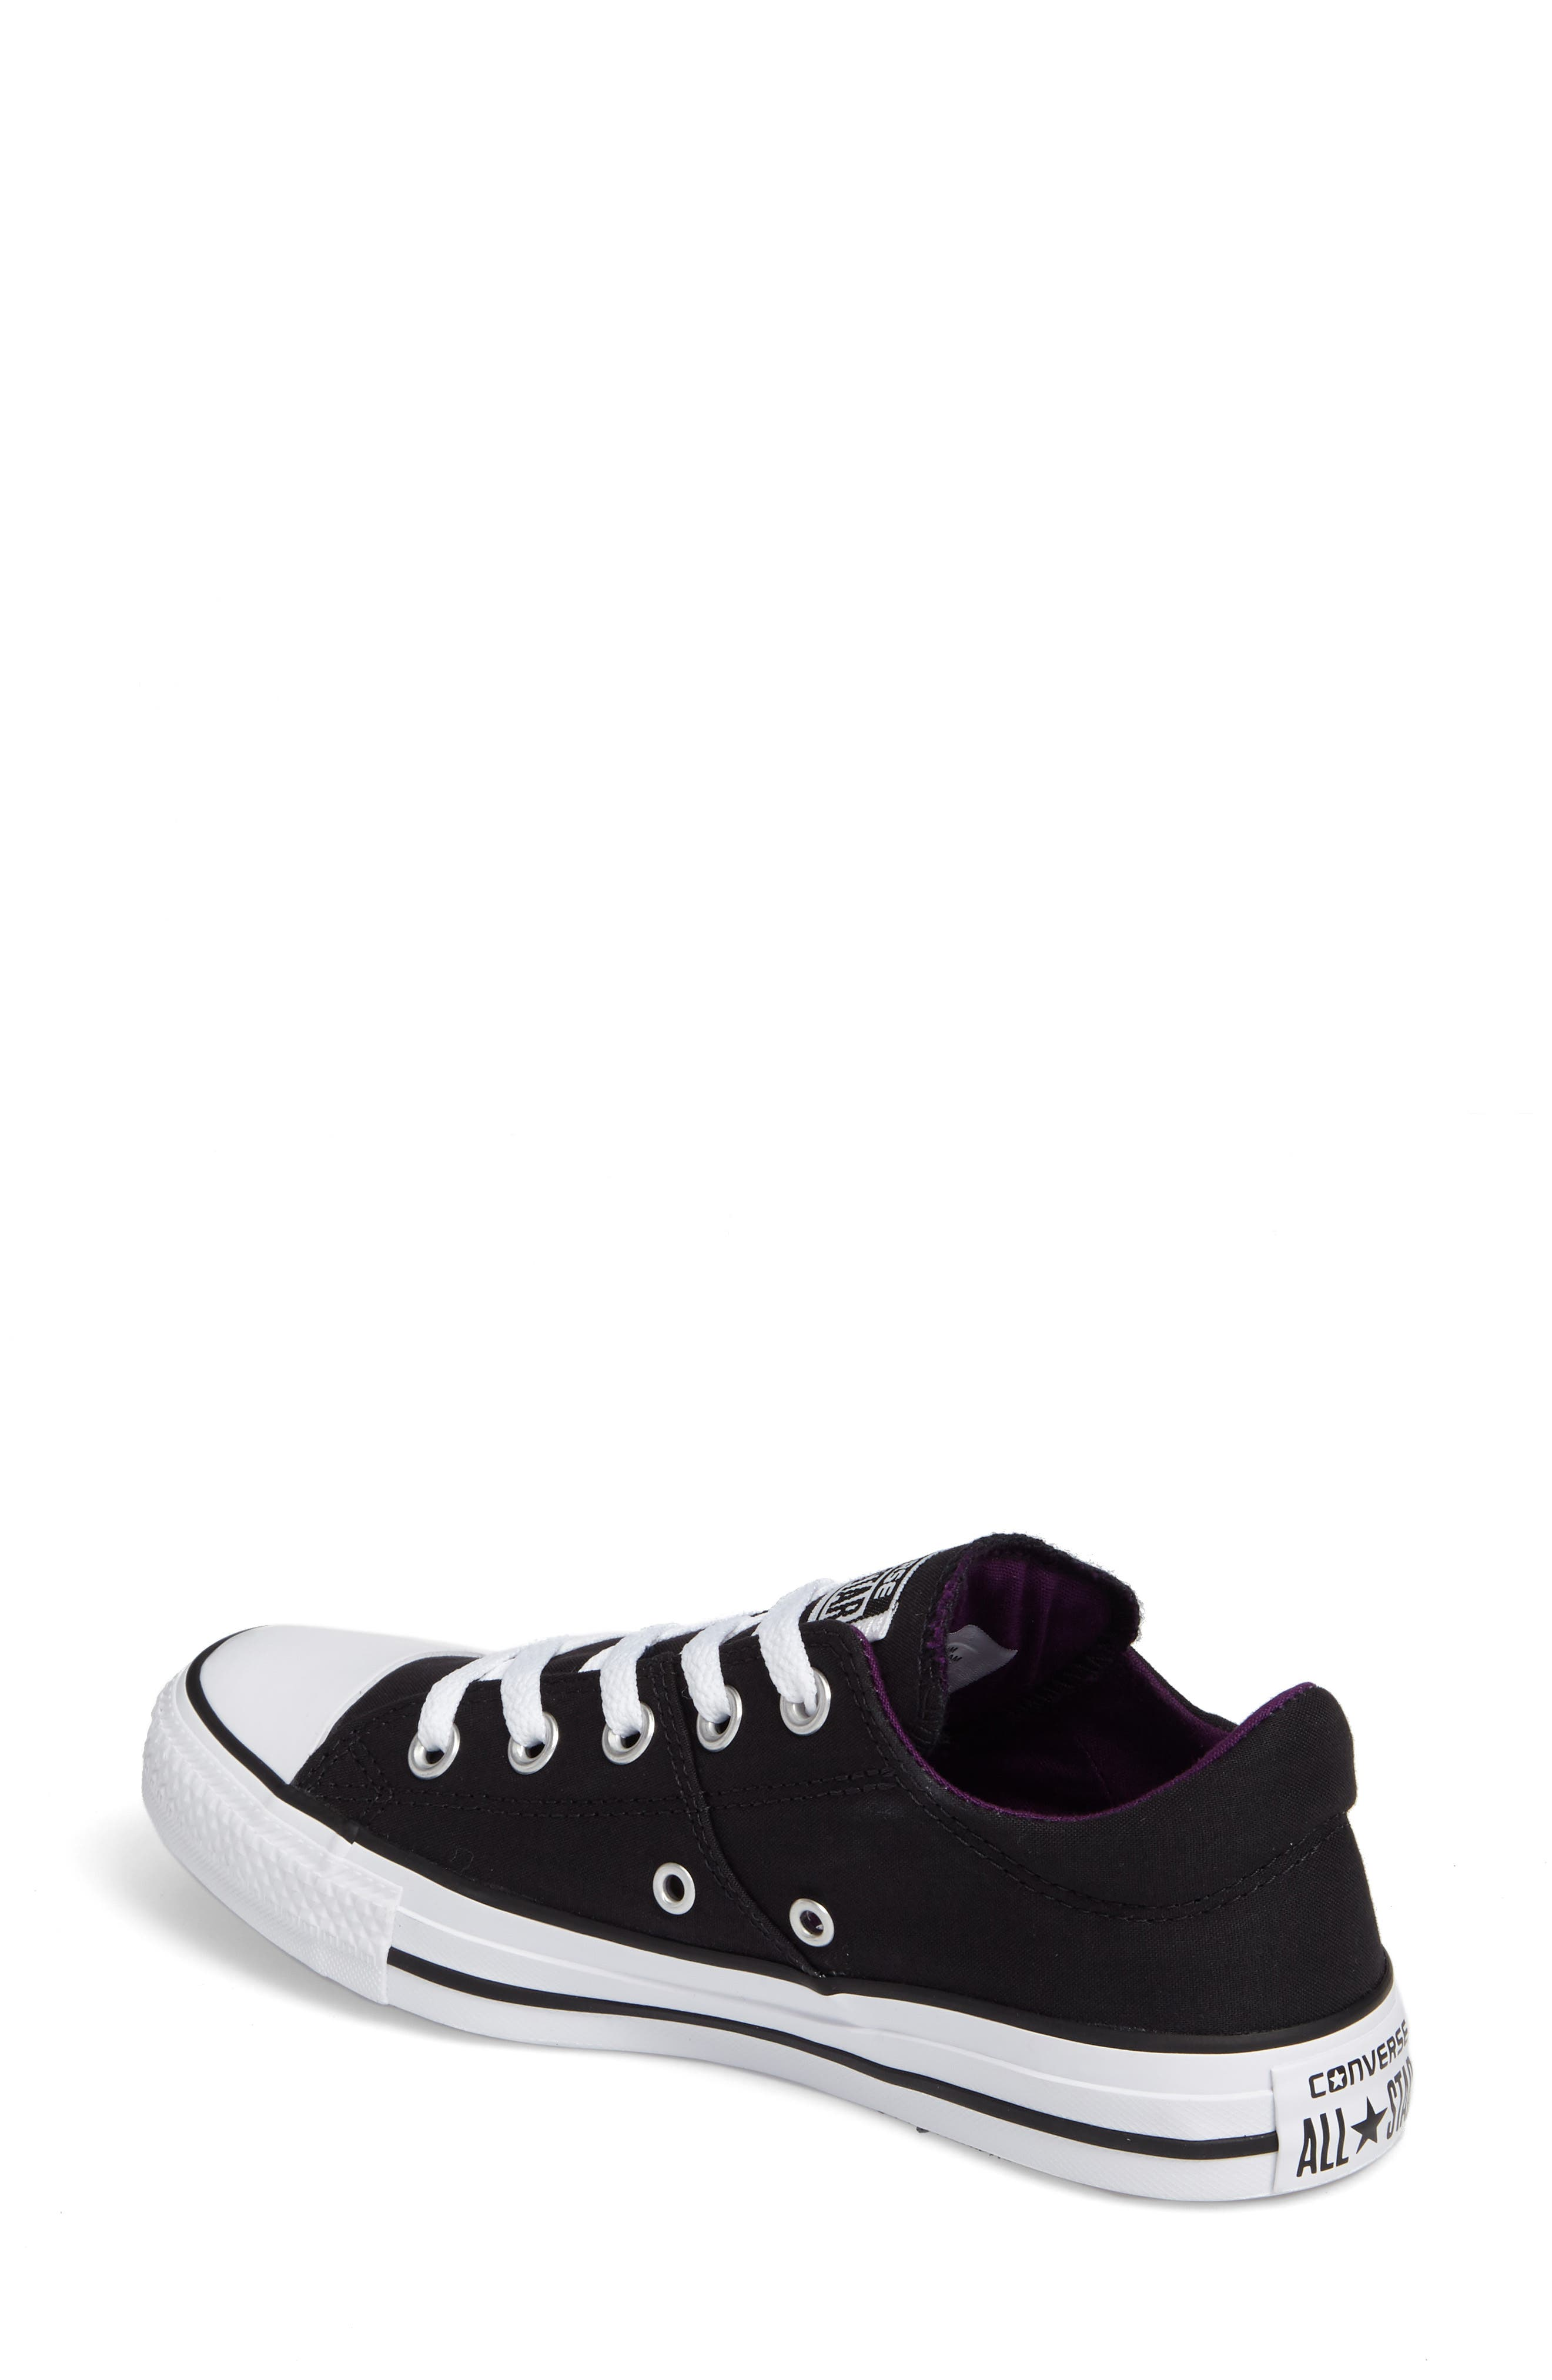 Chuck Taylor<sup>®</sup> All Star<sup>®</sup> Madison Low Top Sneaker,                             Alternate thumbnail 2, color,                             Black Canvas